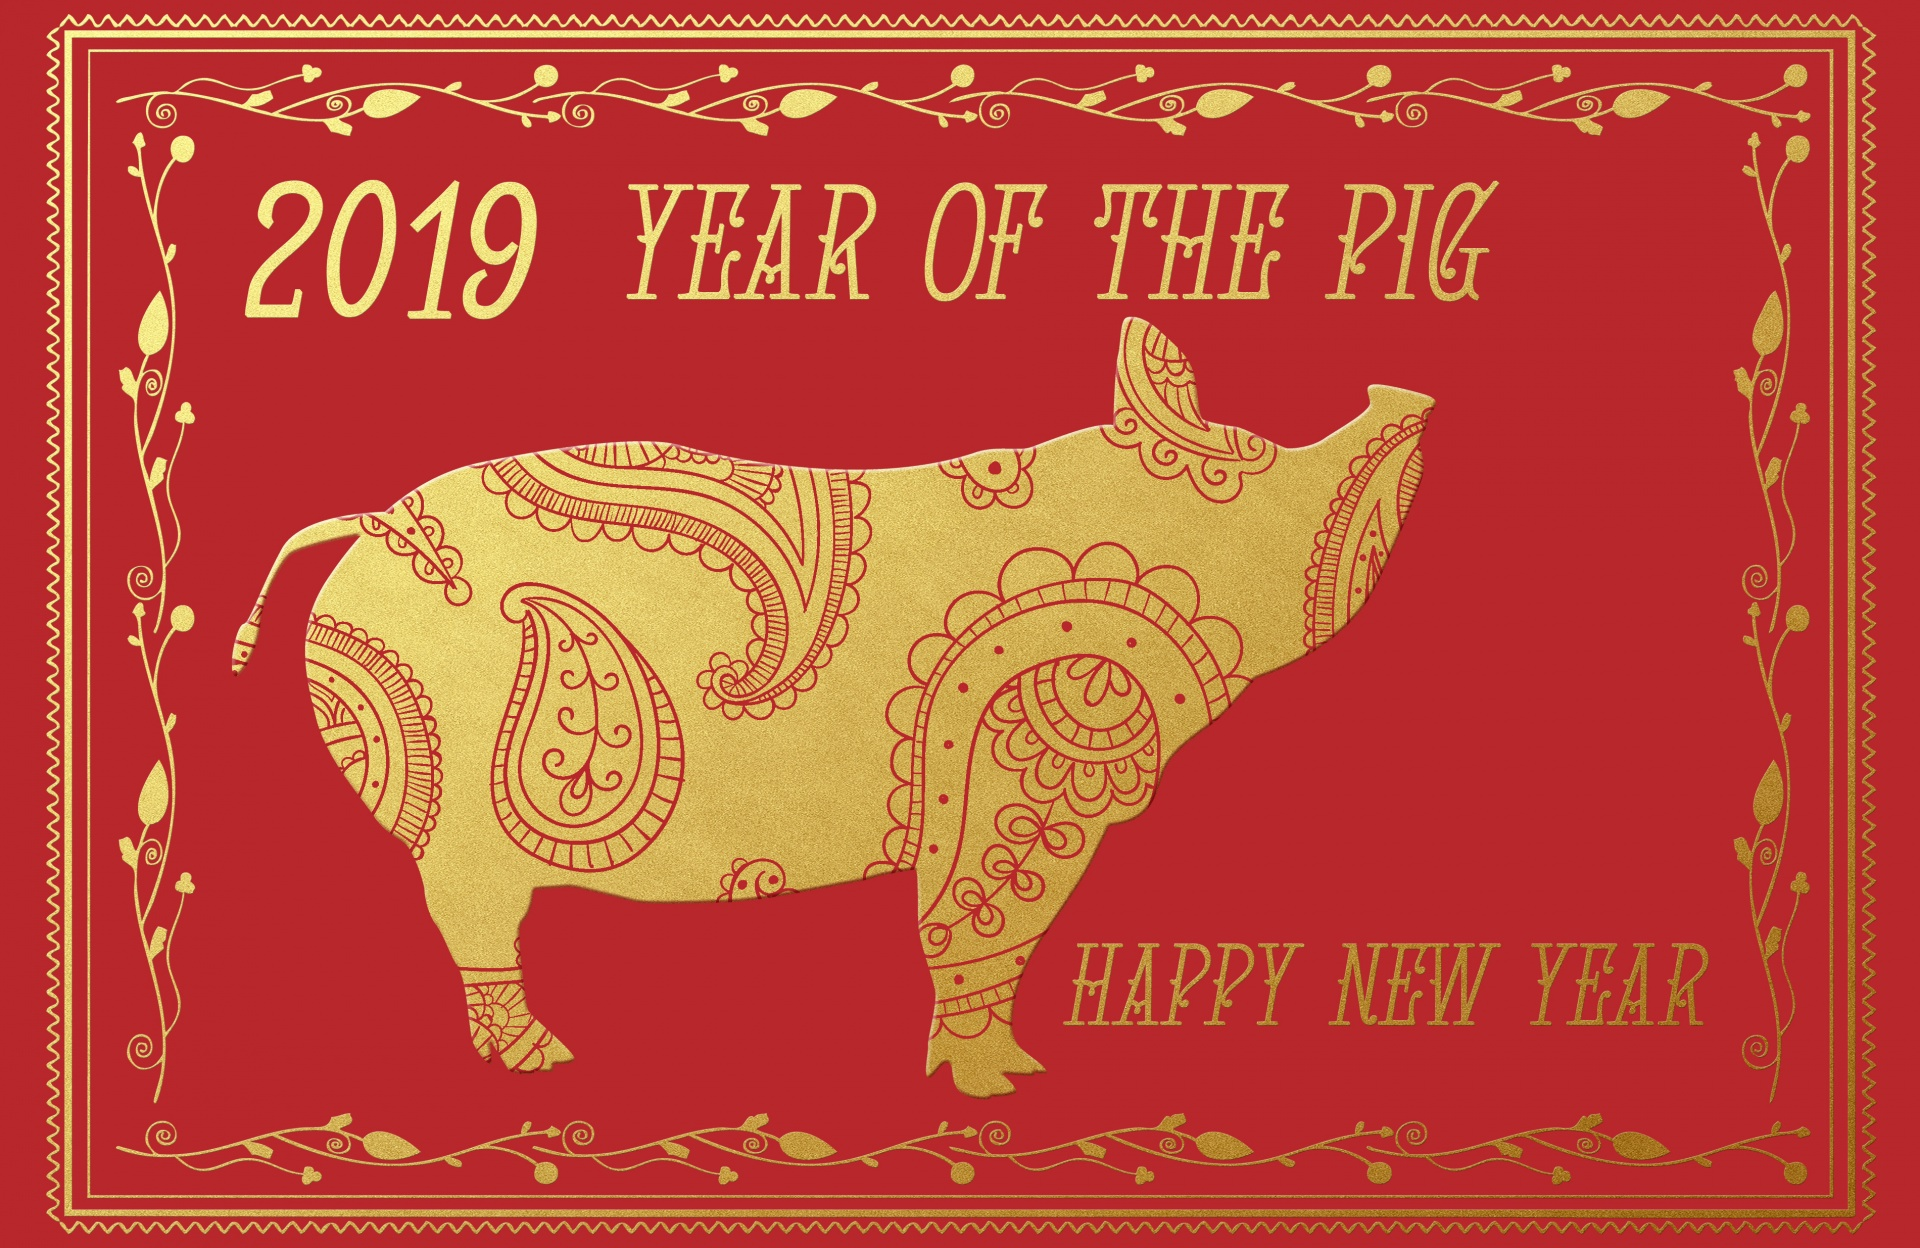 year-of-the-pig-2019.jpg